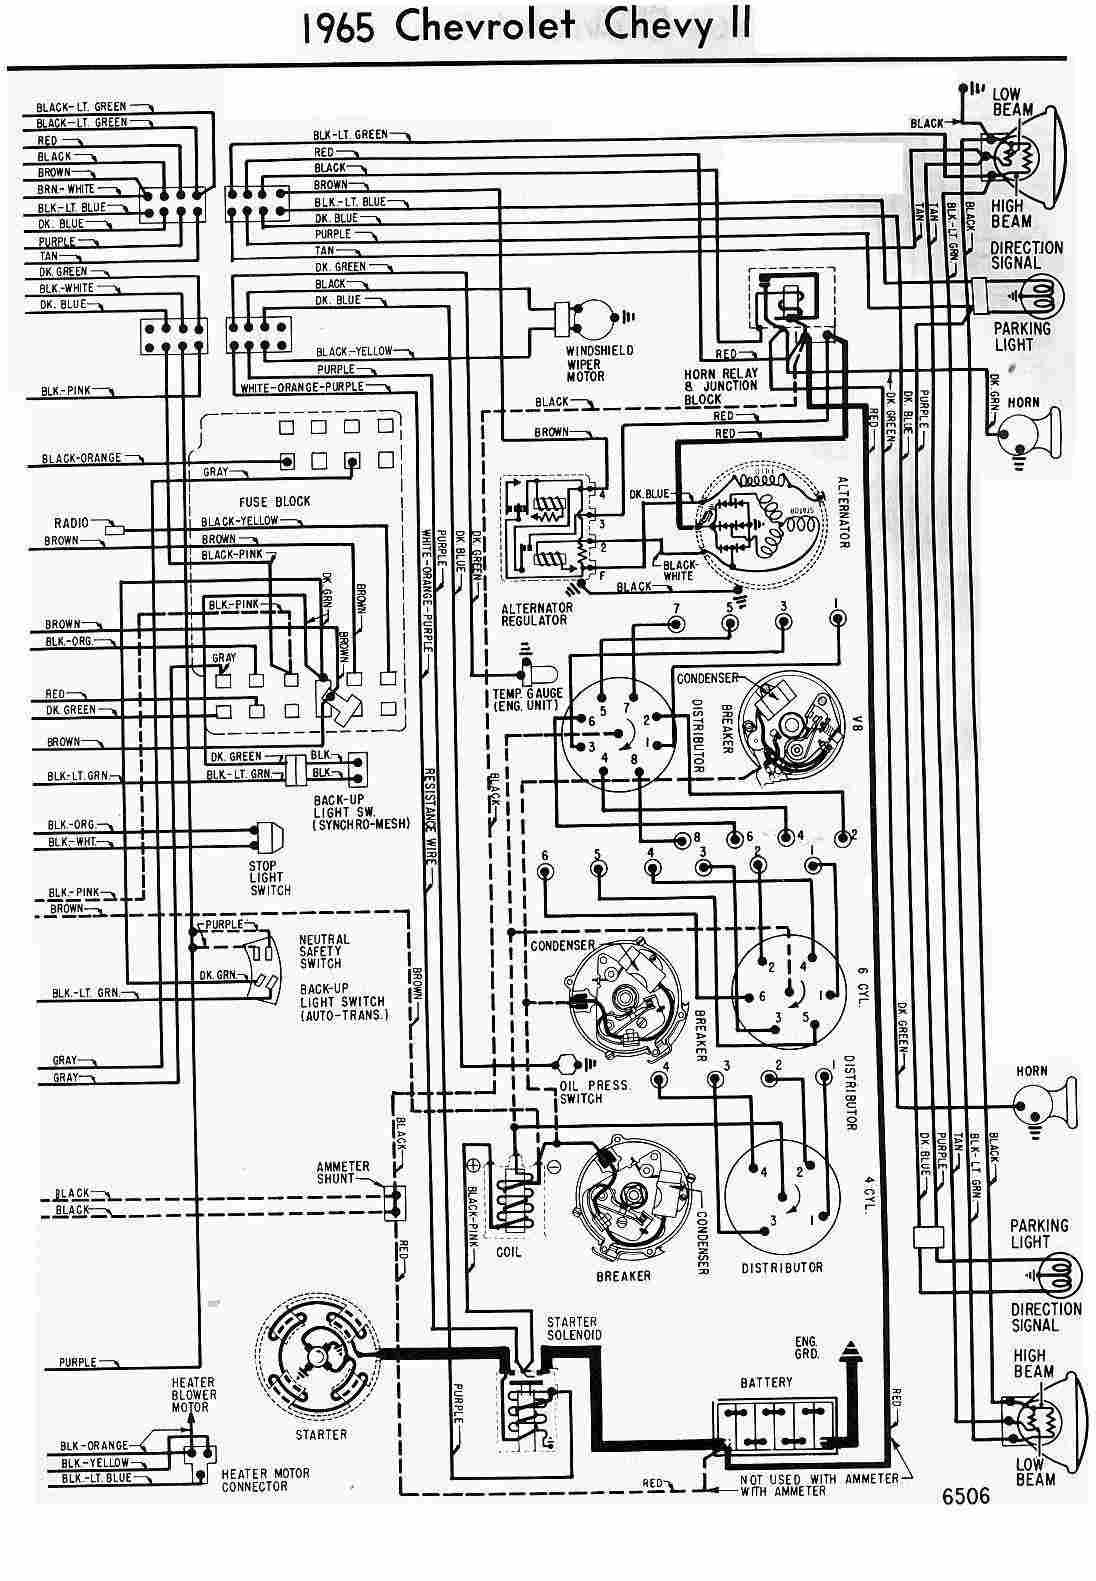 1961 Chevy Dash Wiring Diagram Free Download - Auto Electrical ...